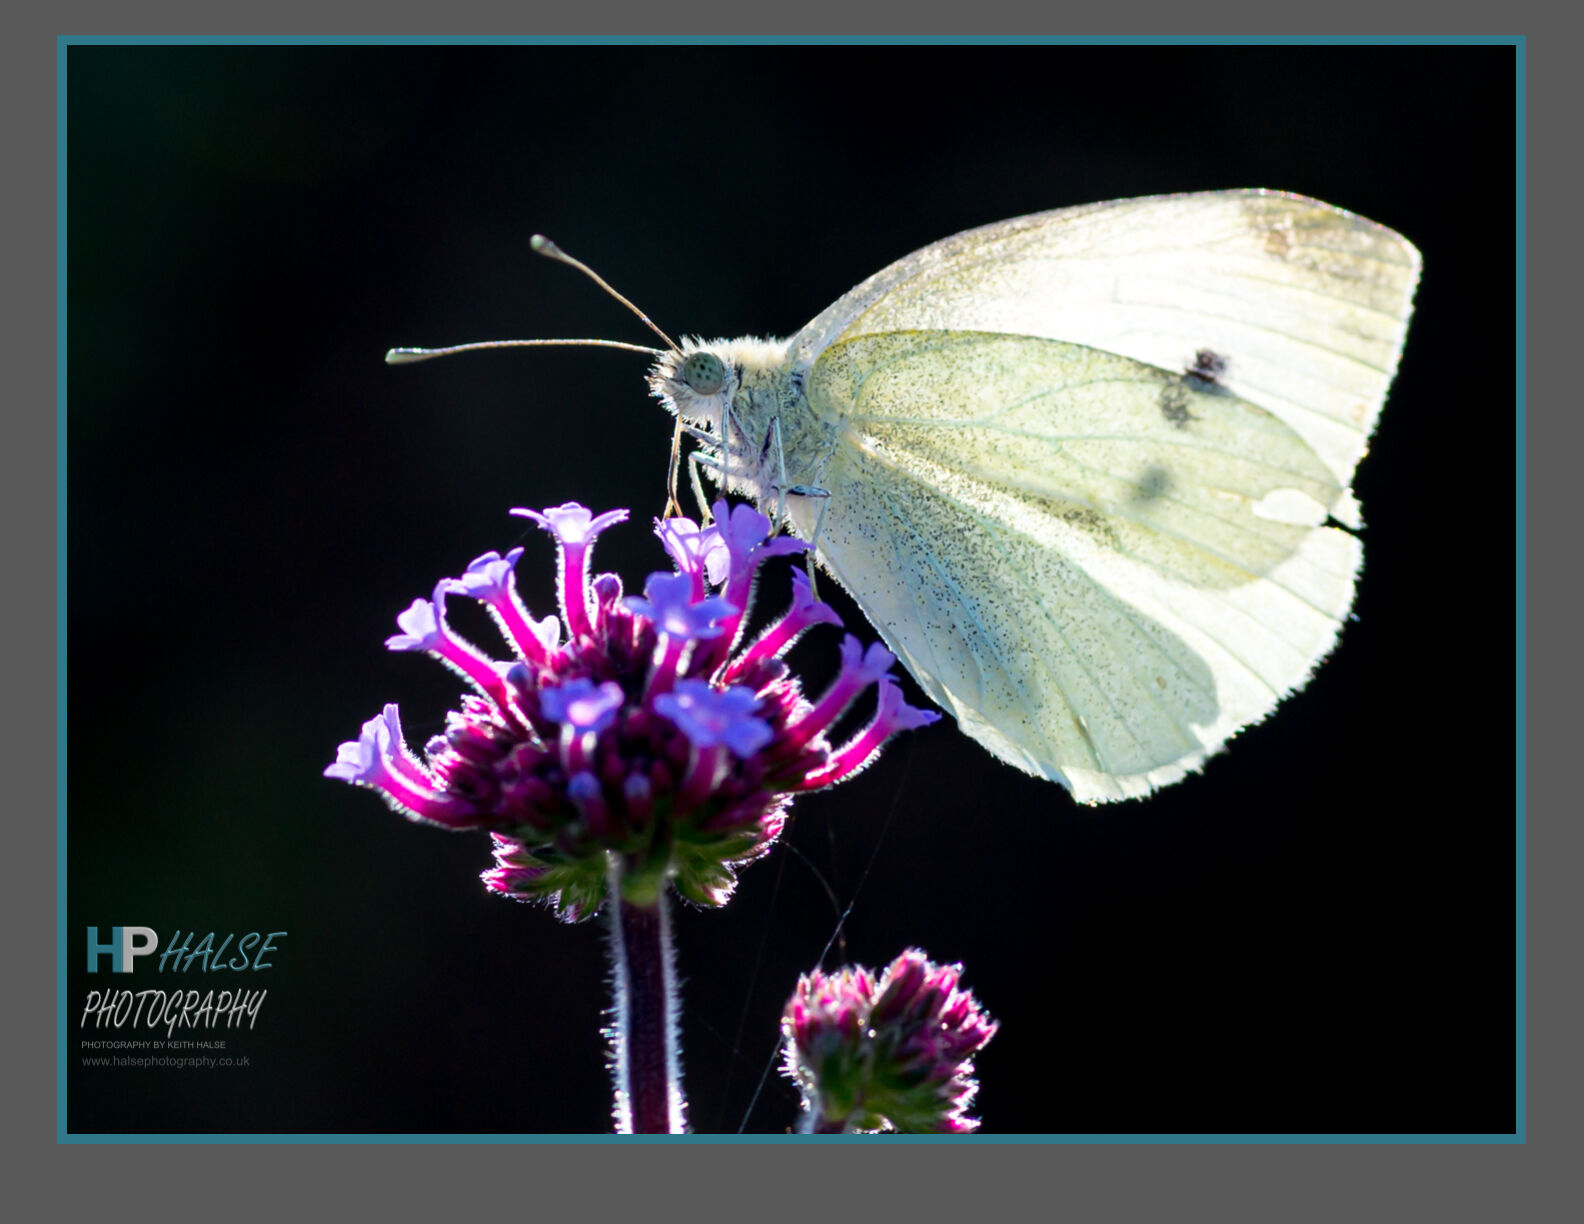 005 Large White Butterfly